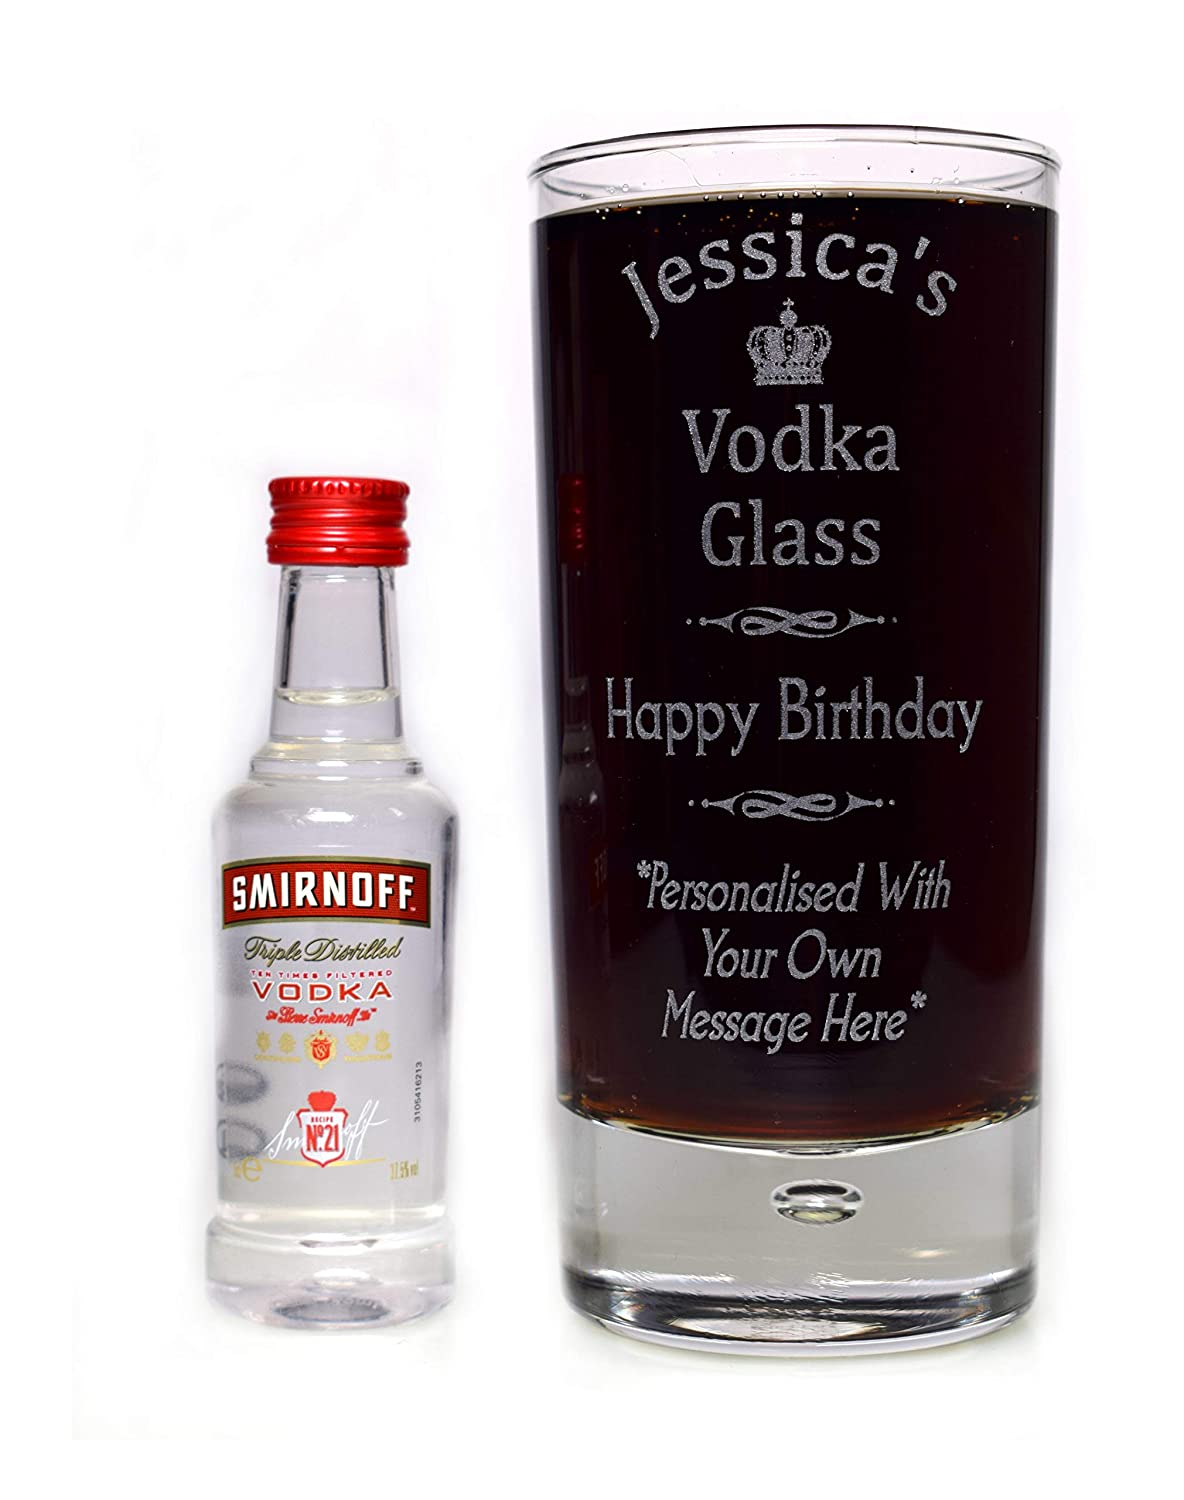 Engraved/Personalised VODKA SPECIAL OCCASION Highball Glass & SMIRNOFF Miniature Gift For Mum/Dad/Nan/Nanny/Grandad/Girls/Boys/Men/Women/18th/21st/30th/40th/50th/60th/65th/Birthday/Mothers/Fathers Day/Christmas/Husband/Wife/Son/Daughter/Step Dad/Weddi